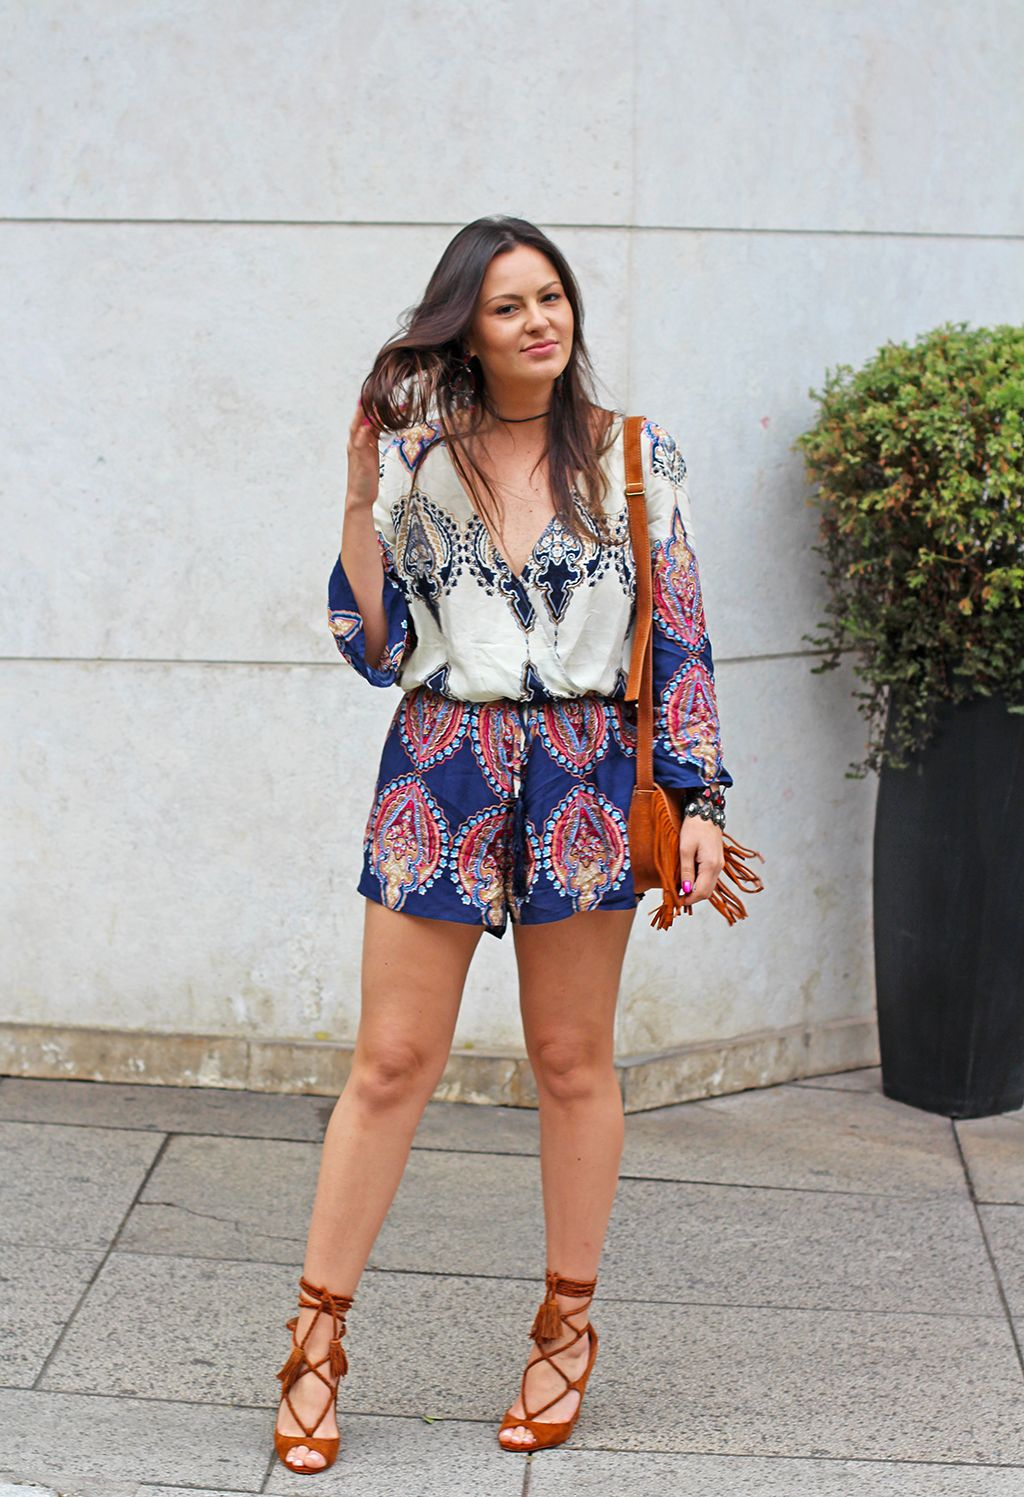 shein_she_in_jumpsuit_macaquinho_dicas_loja_online_china_estampa_look_do_dia_outfit_ootd_mood_boho_cade_meu_blush_blog_franjas 0